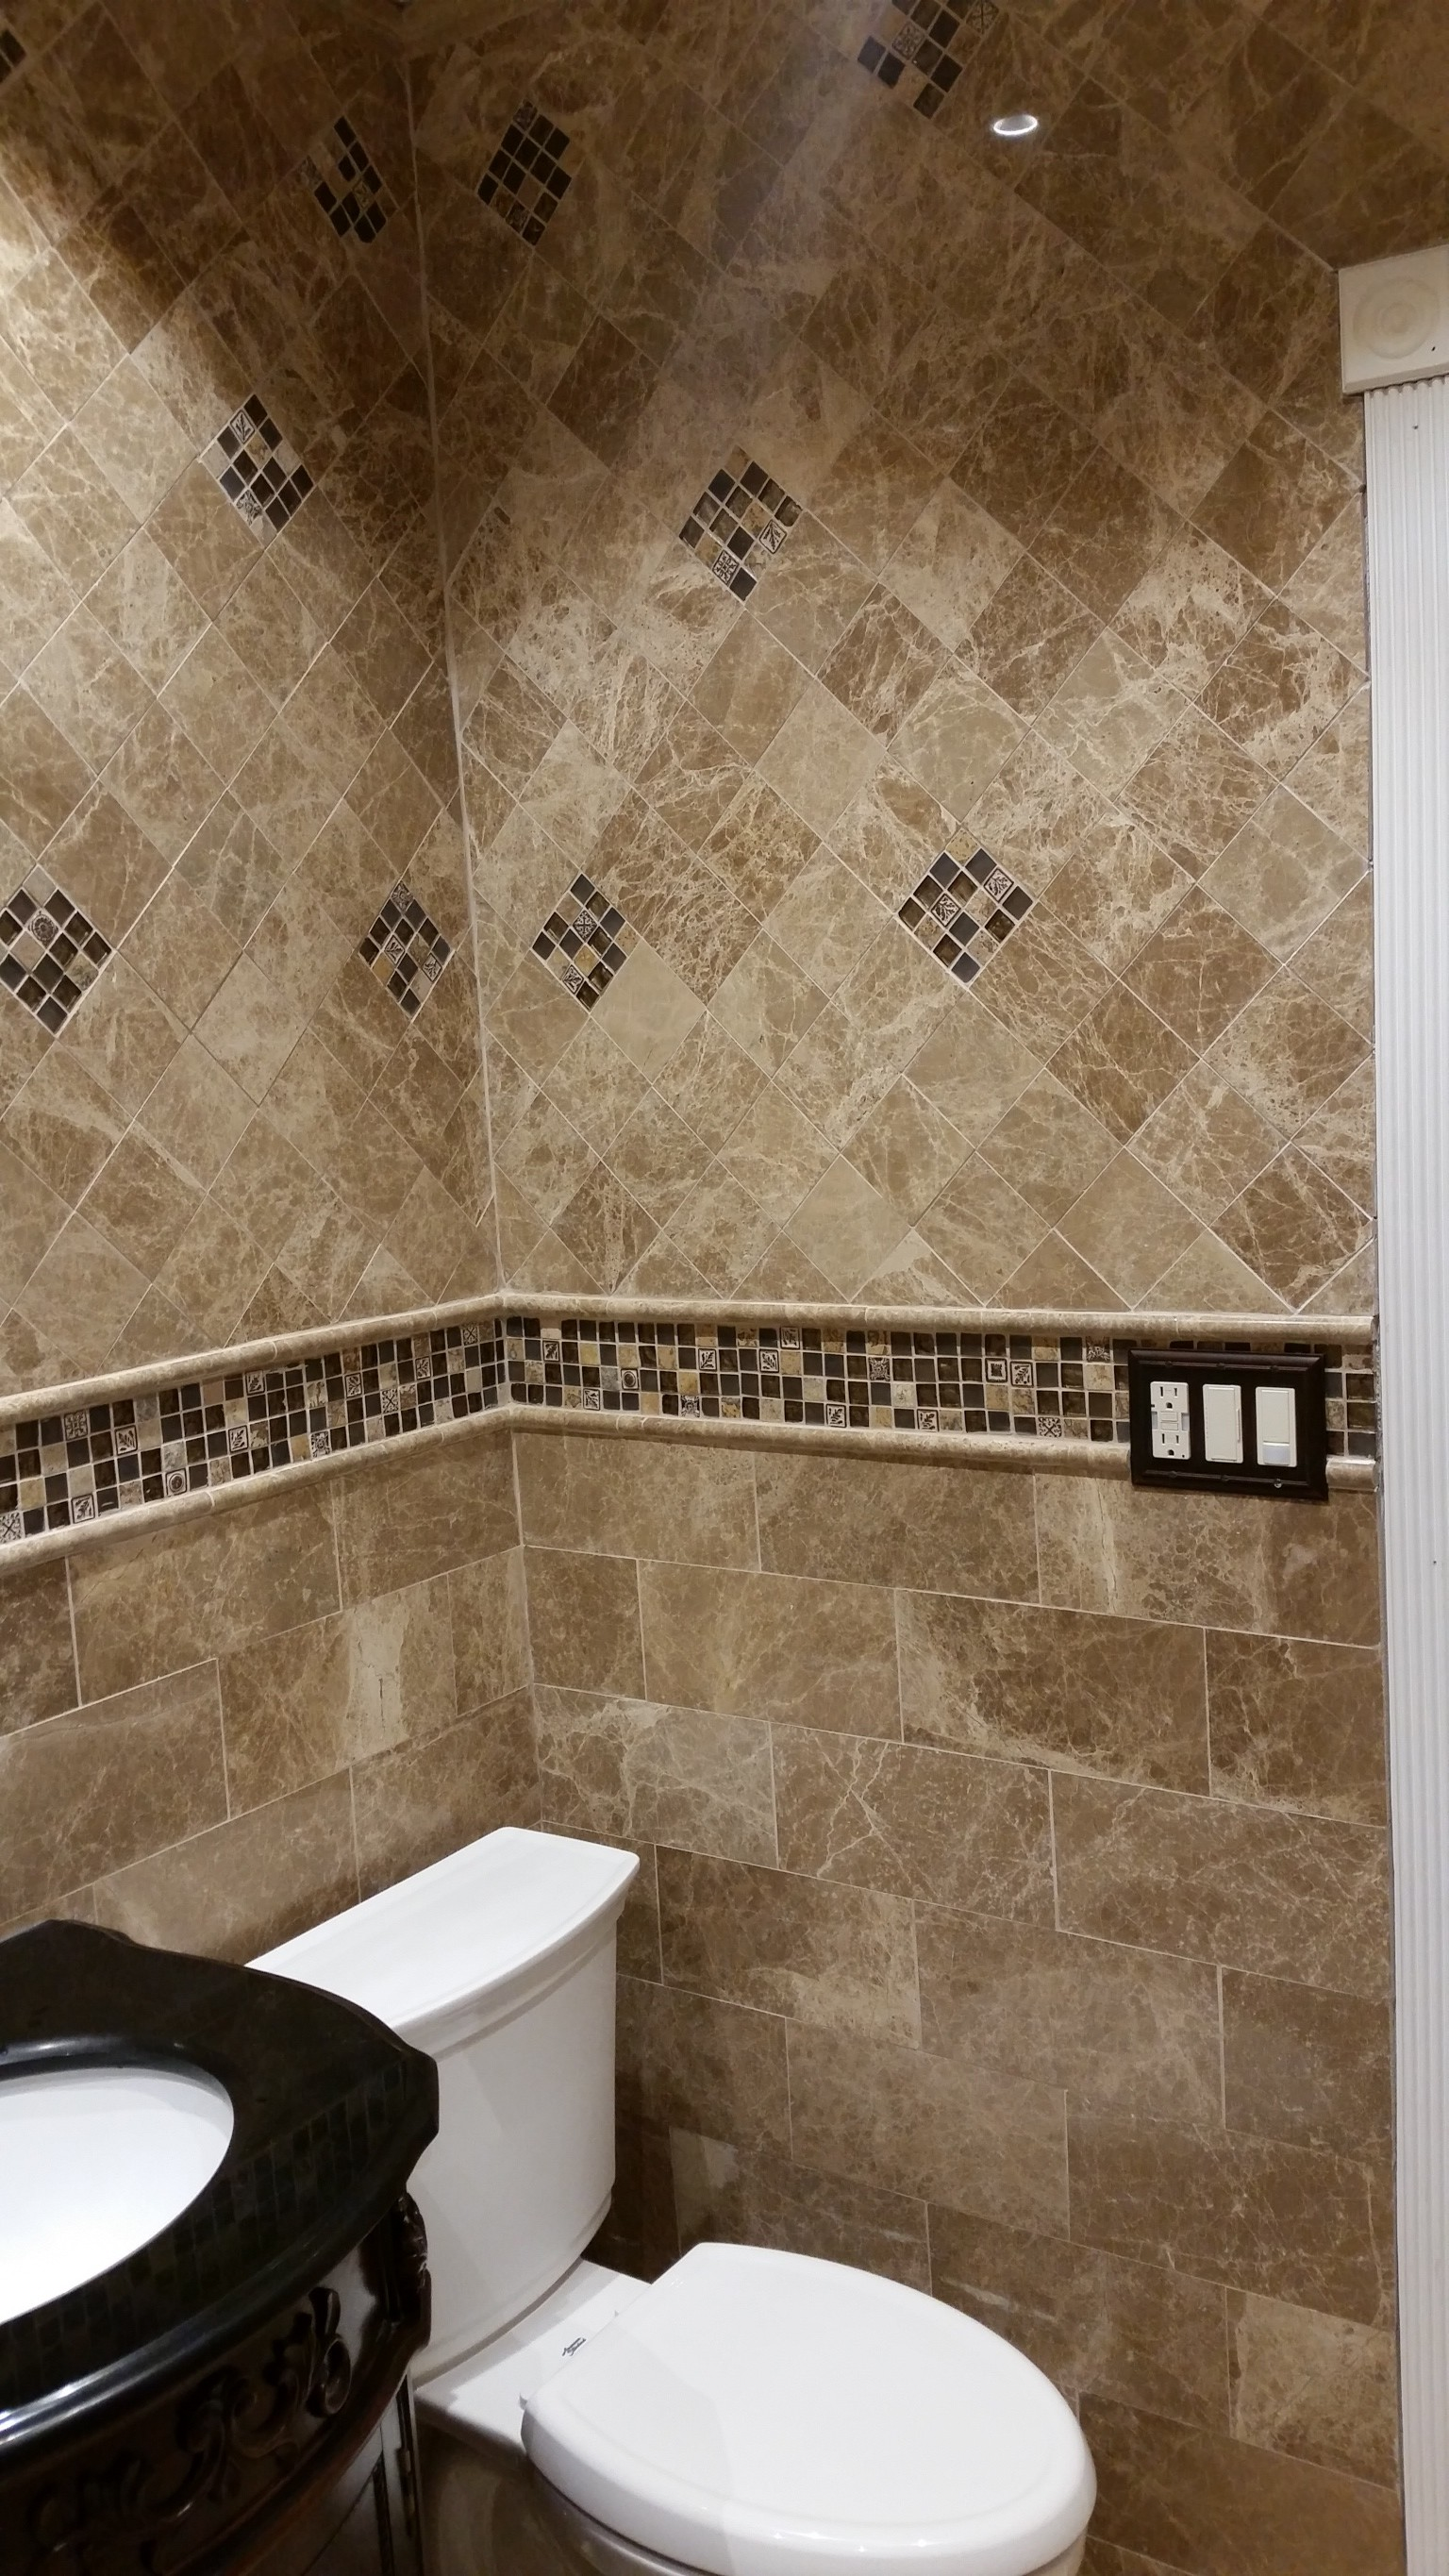 Testimonials - Home Art Tile in Queens,NY